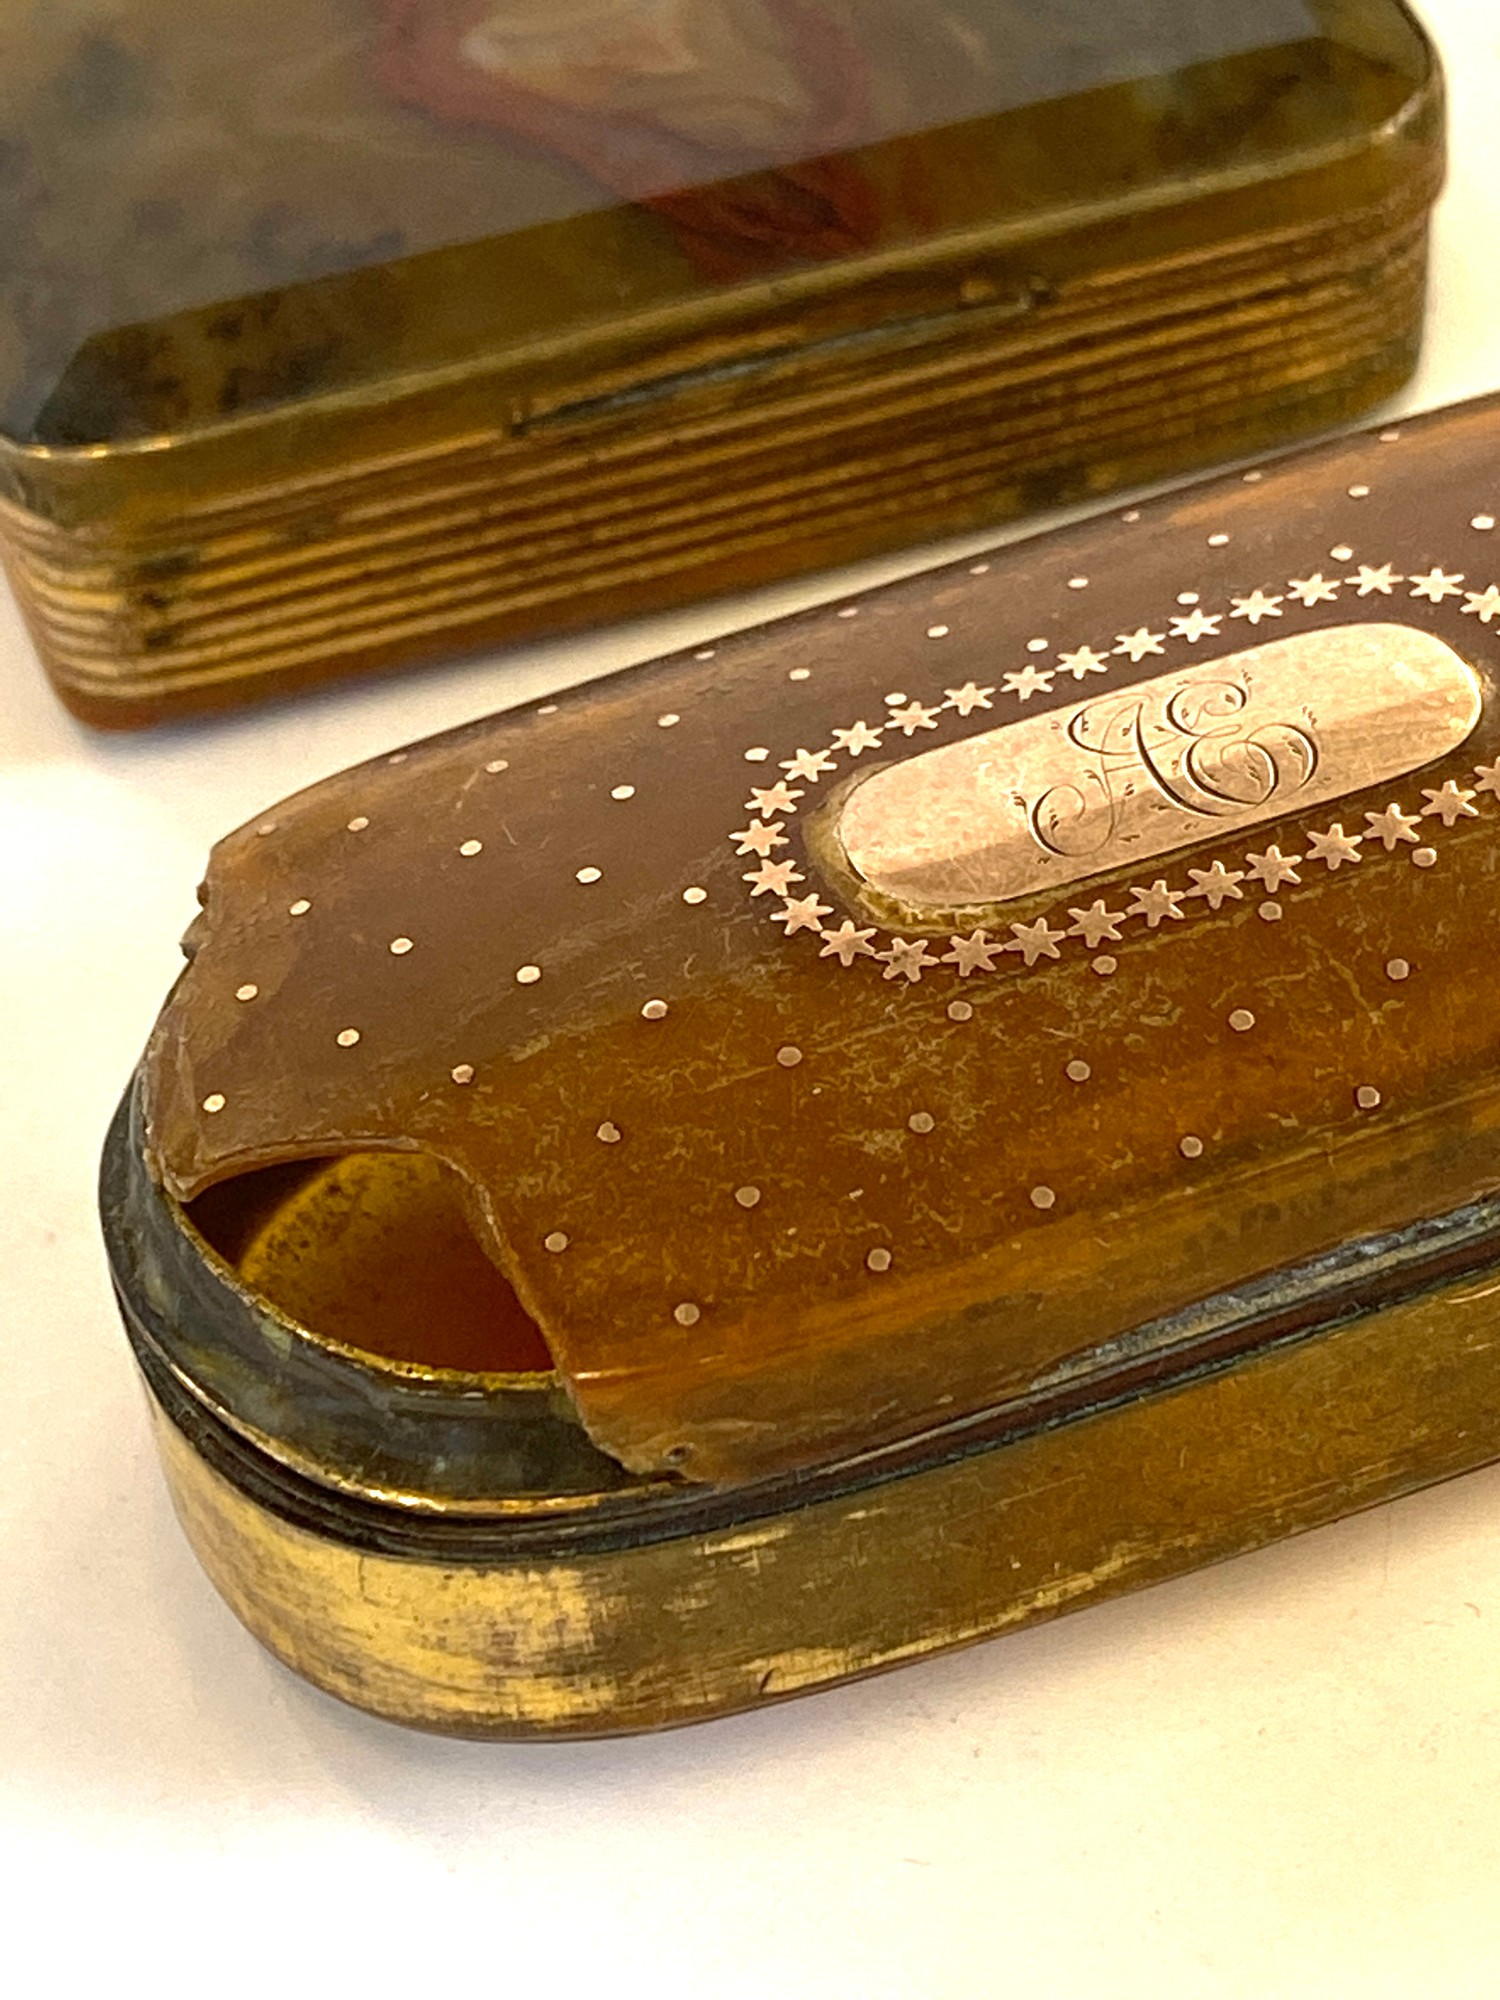 2 Antique snuff boxed gold a pique ware with damage, and one moss agate - Image 2 of 3